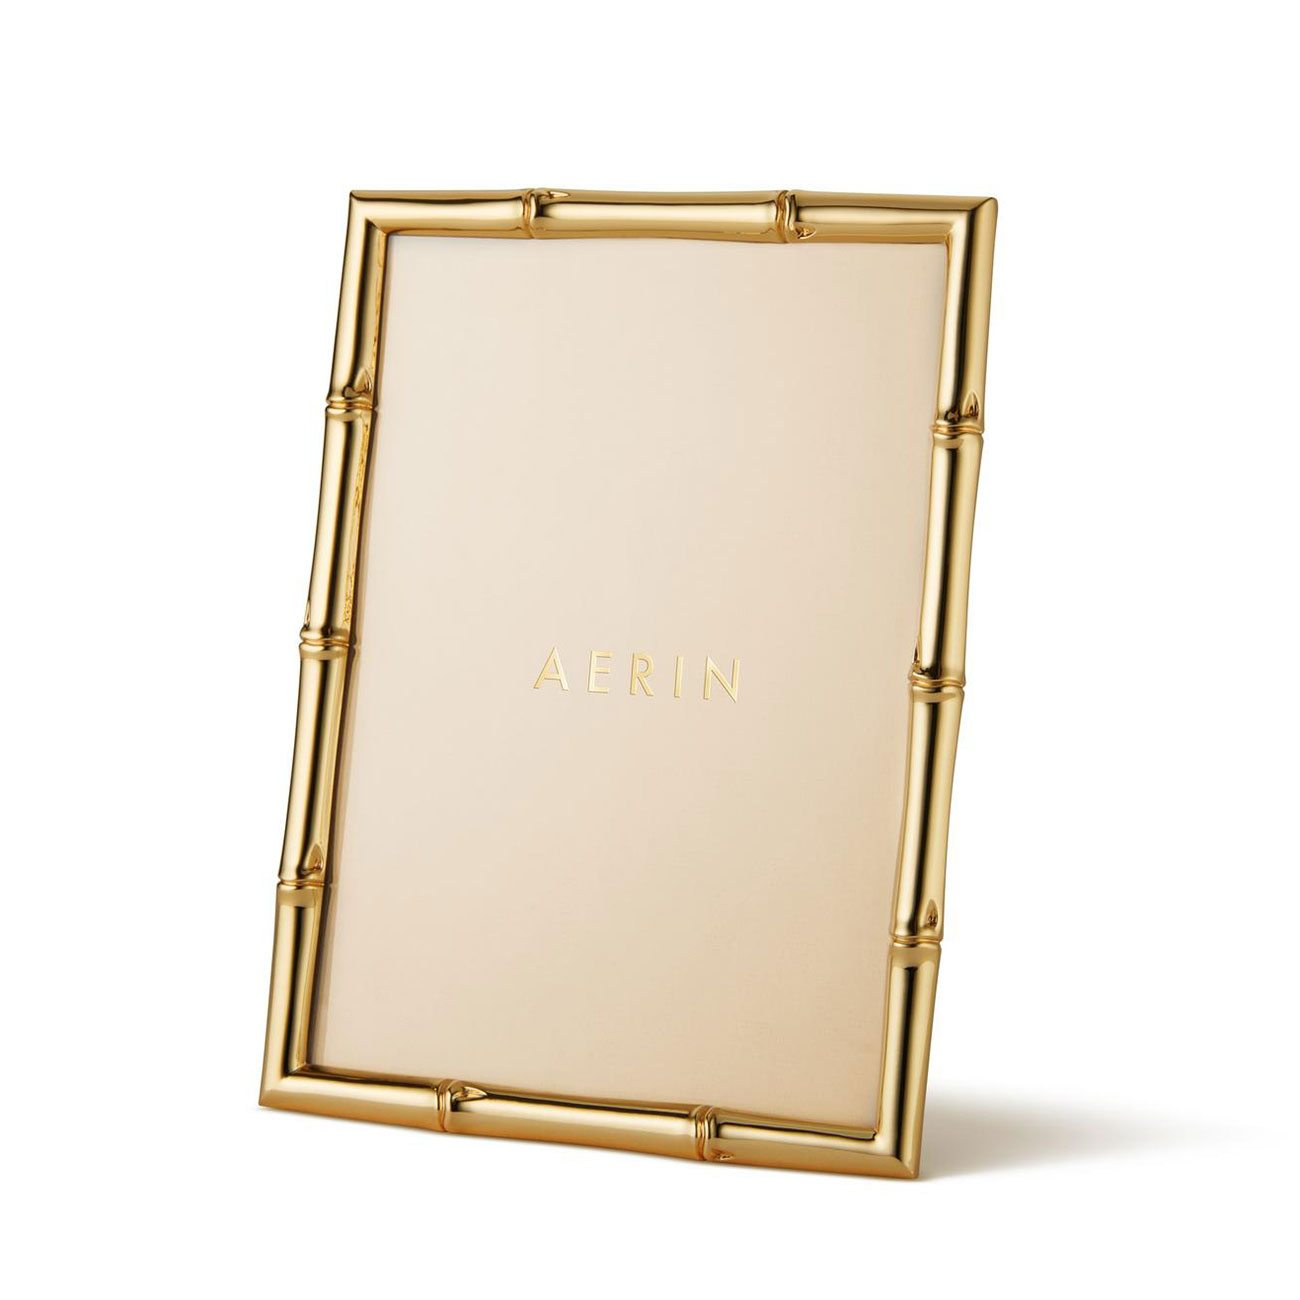 Aerin Mayotte Bamboo Frame - 5 x 7